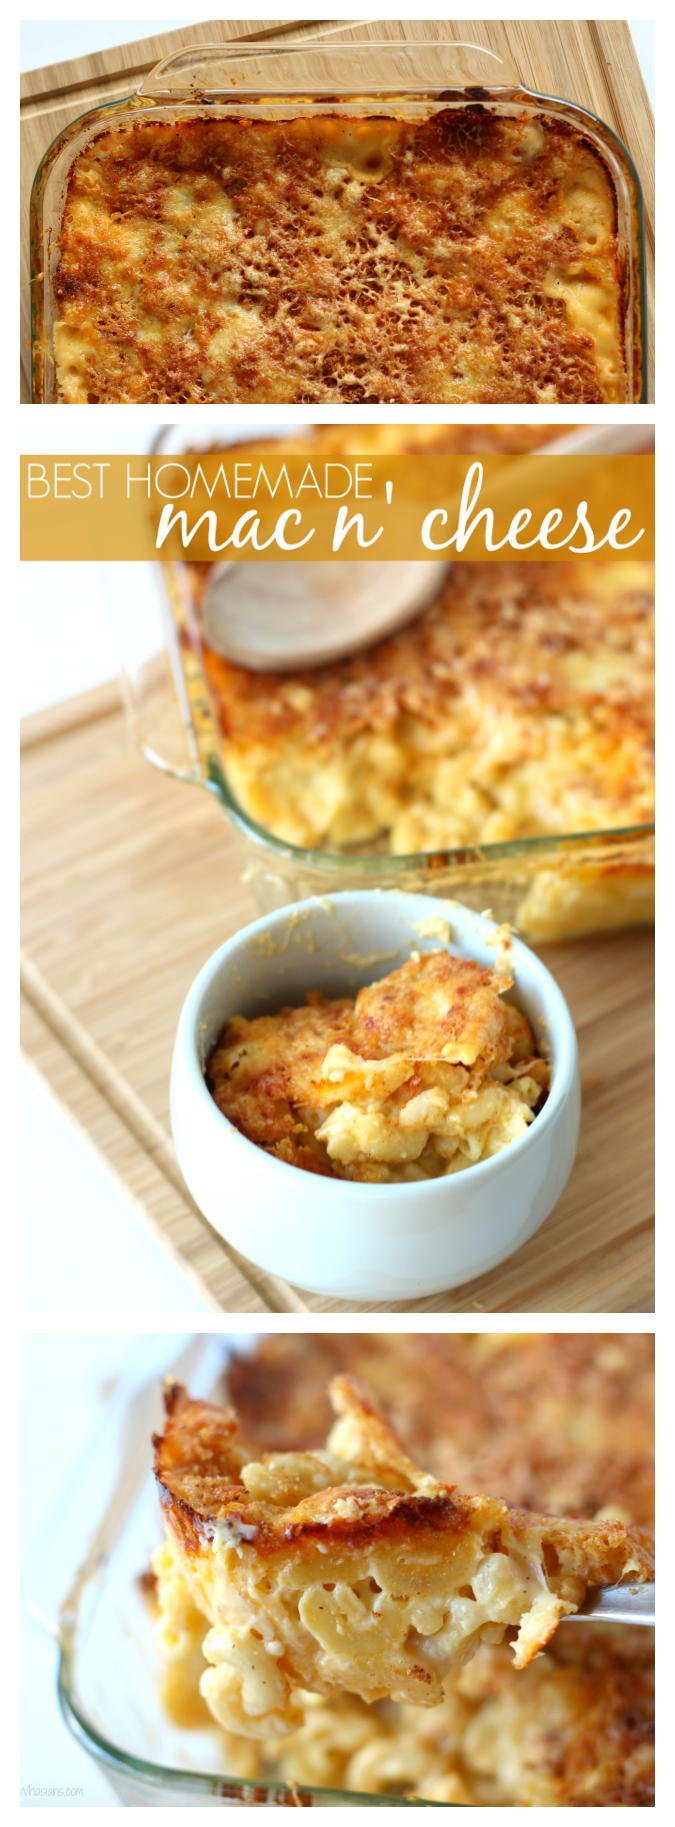 Best homemade mac n cheese pinterest